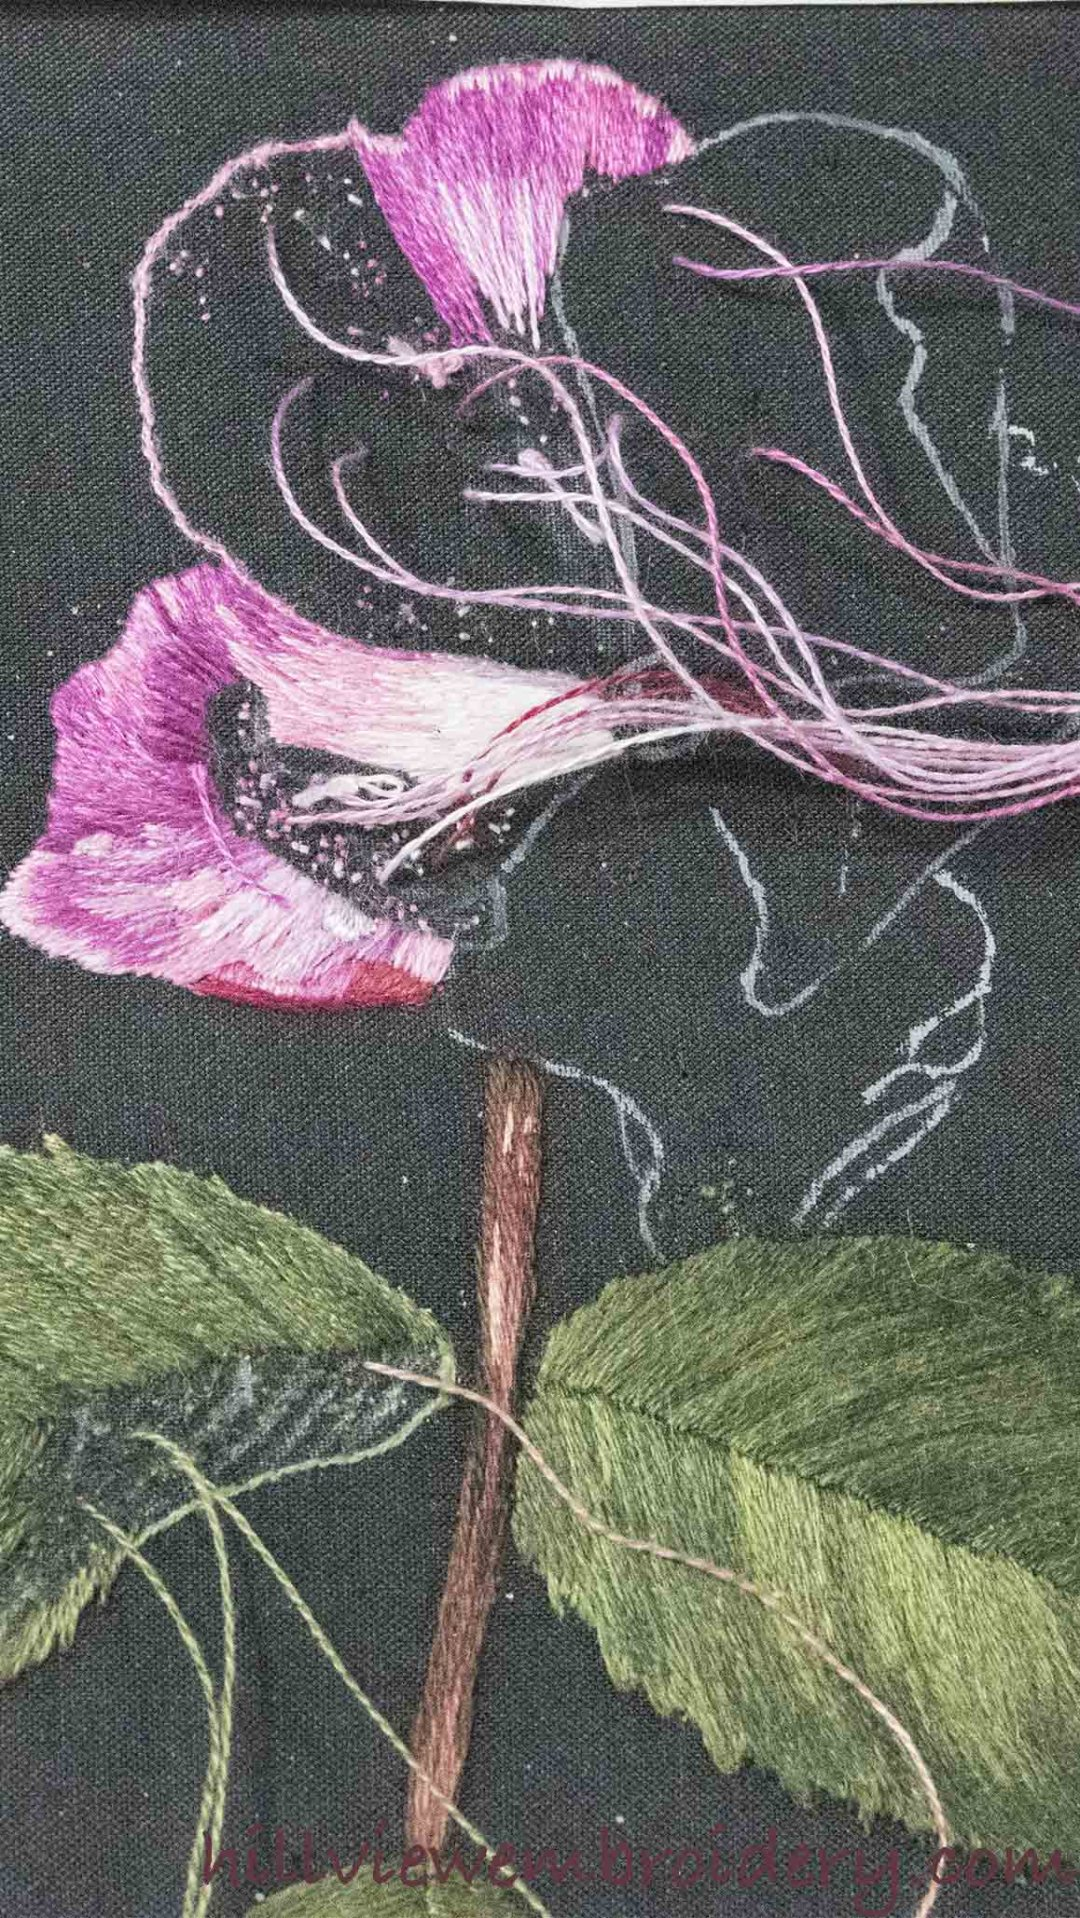 Progress on a silk shaded rose being worked as part of the RSN Certificate